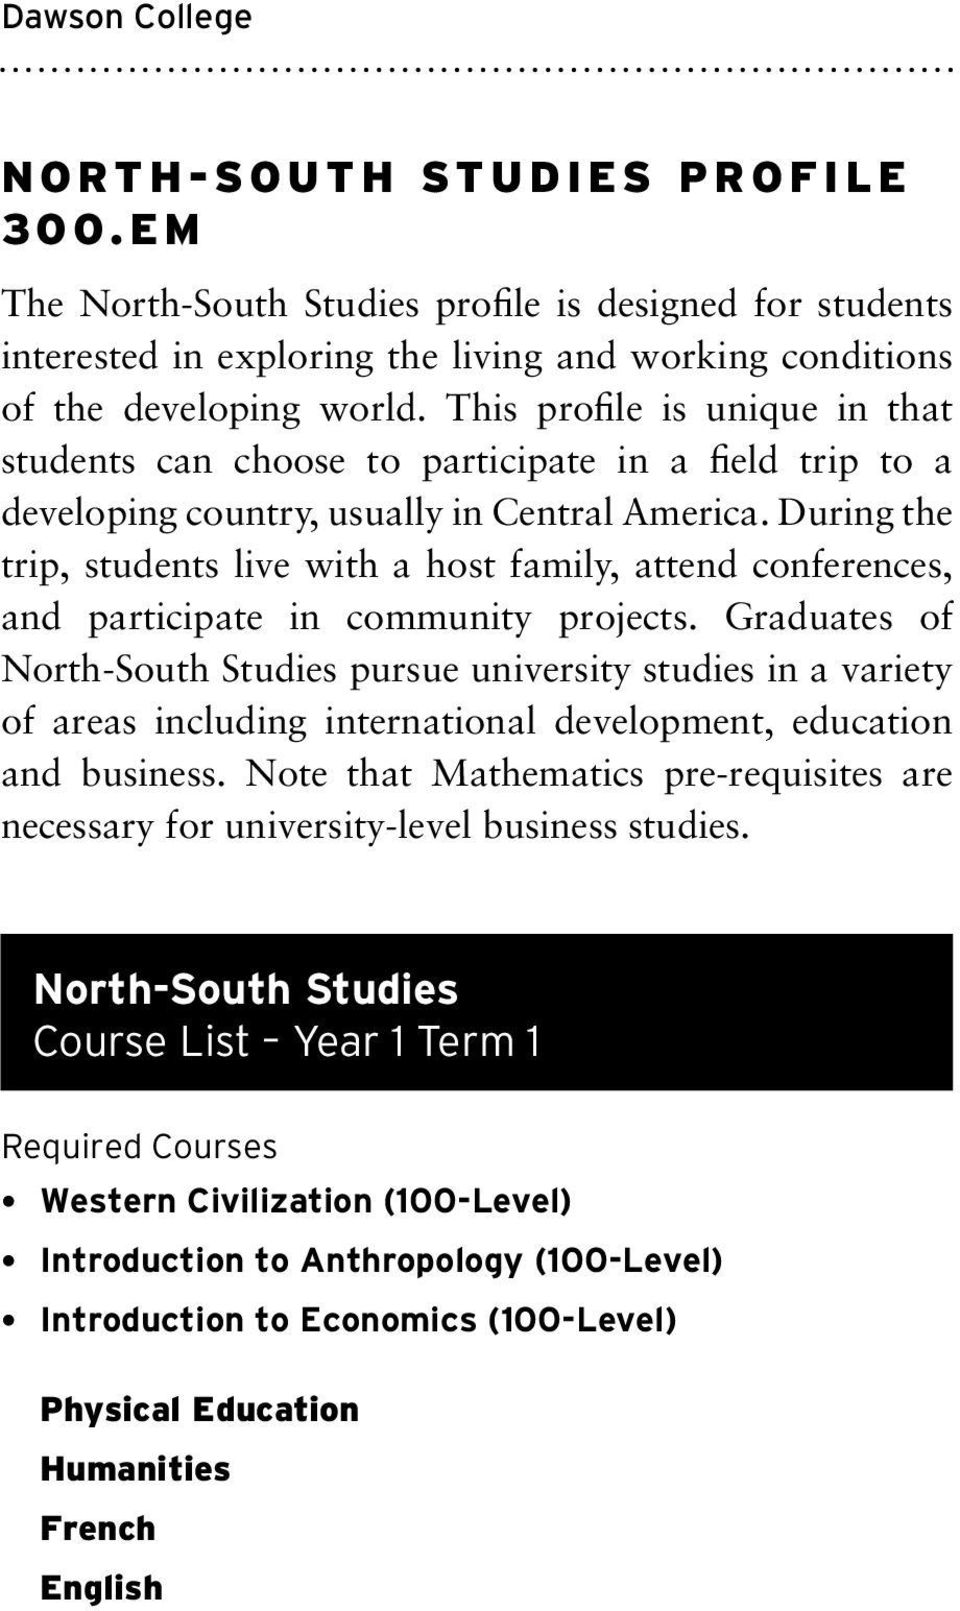 This profile is unique in that students can choose to participate in a field trip to a developing country, usually in Central America.